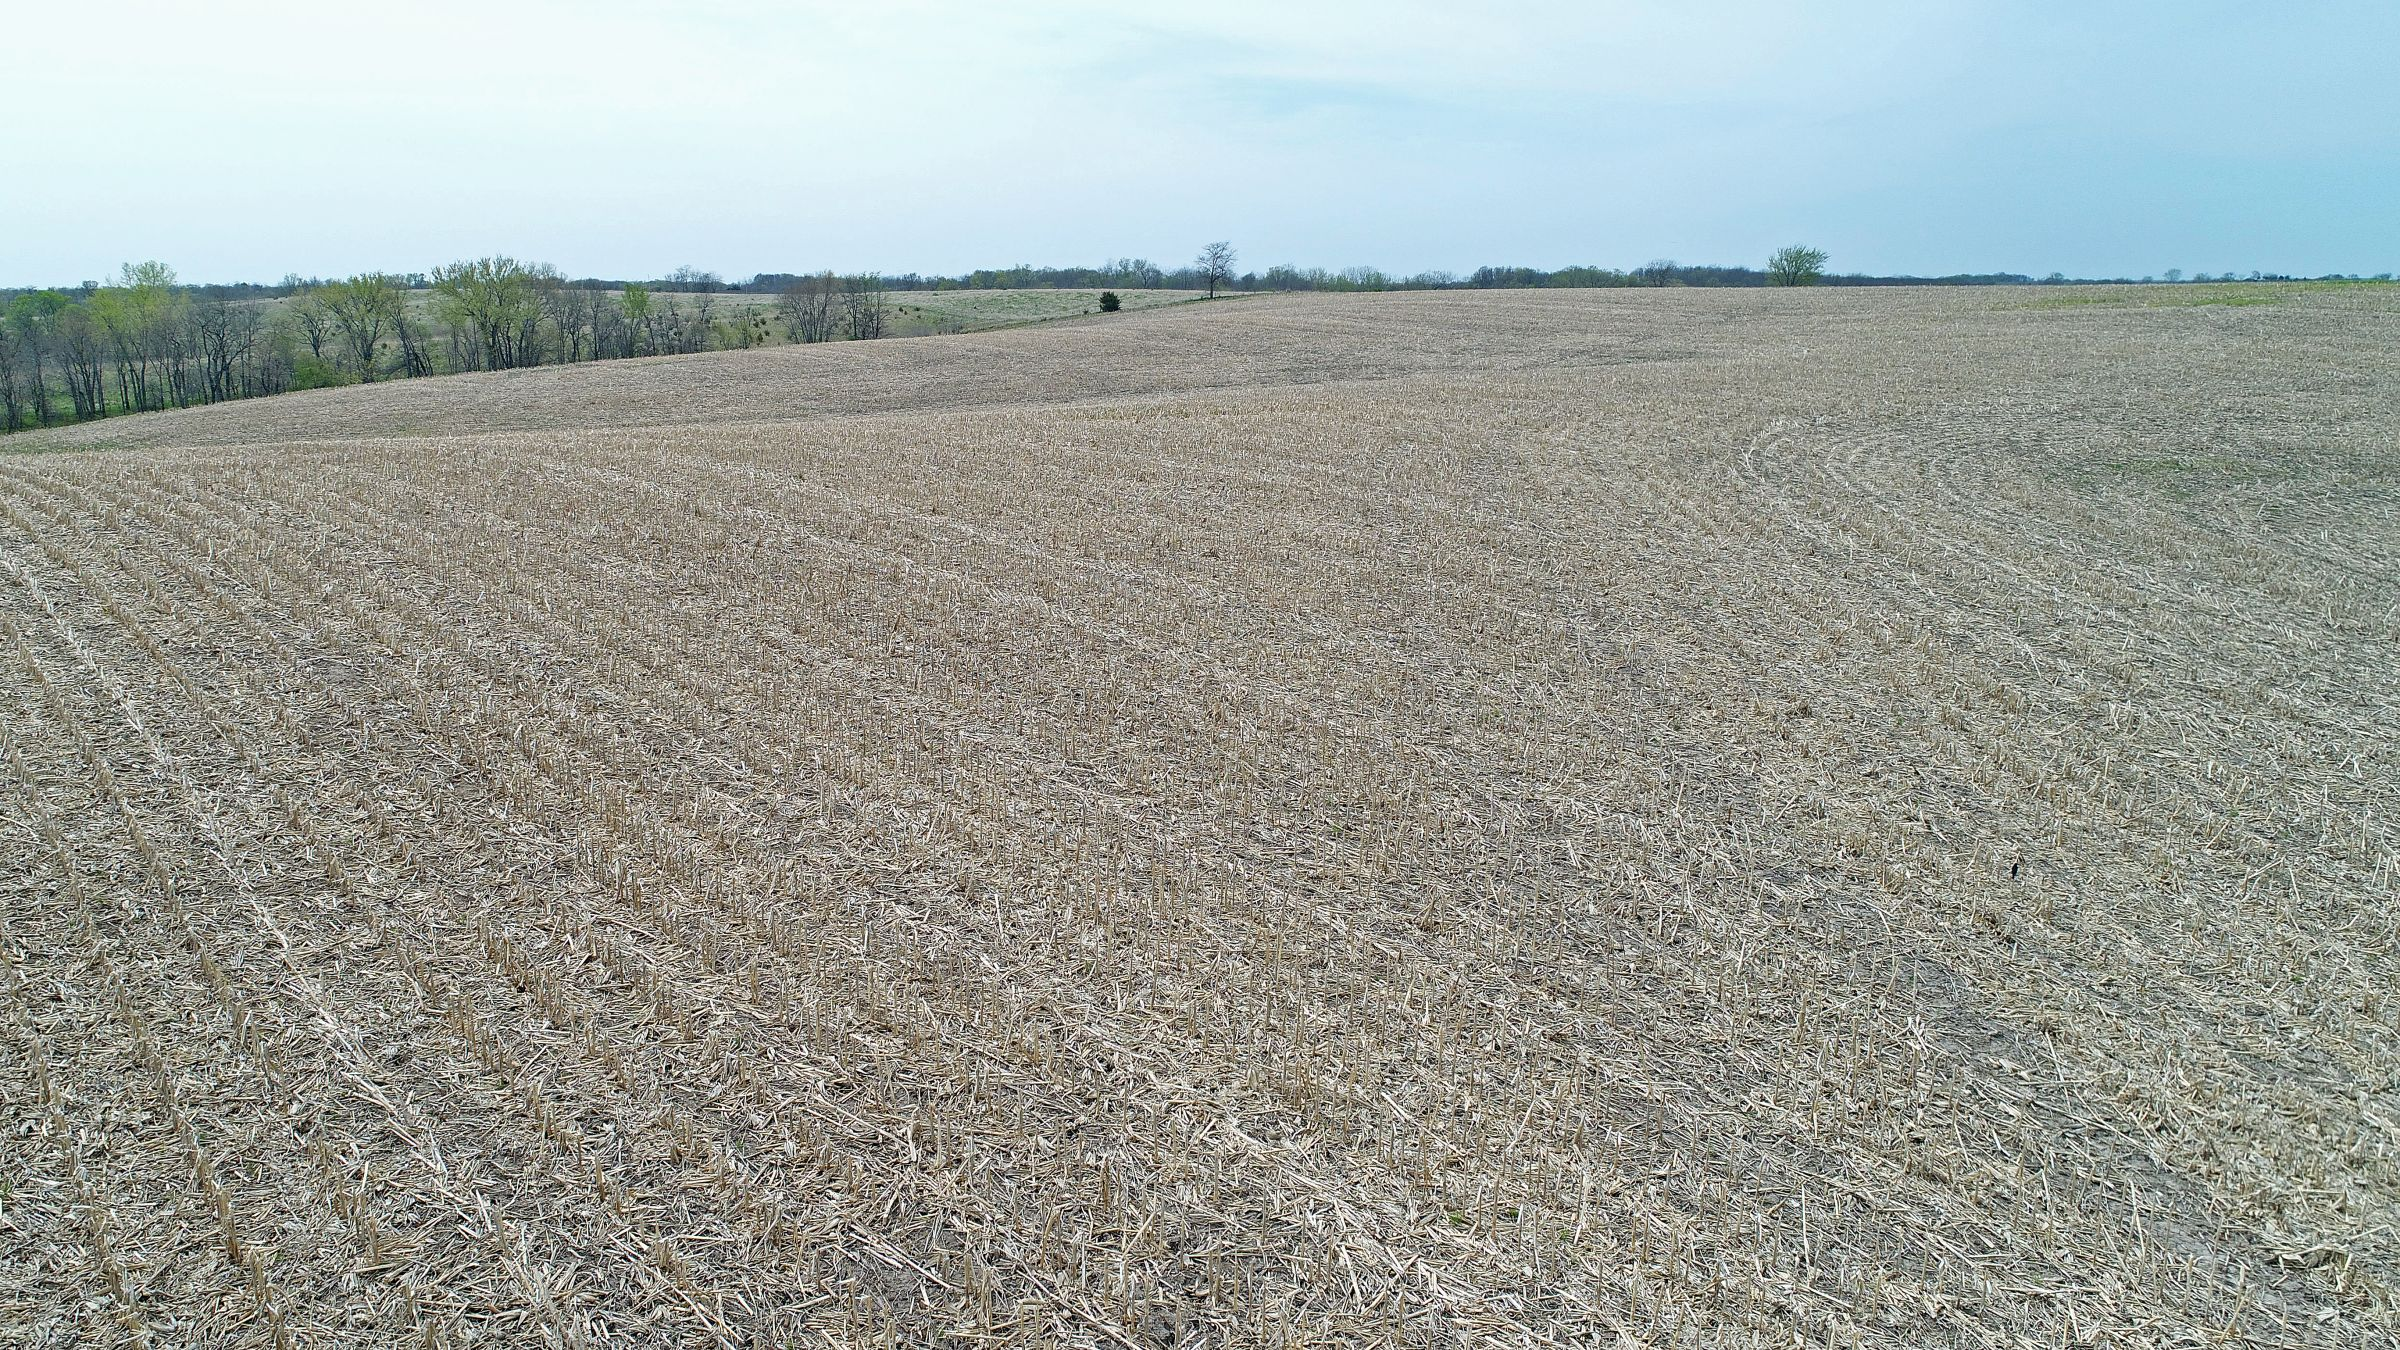 land-decatur-county-iowa-39-acres-listing-number-15495-0-2021-04-27-215419.JPG